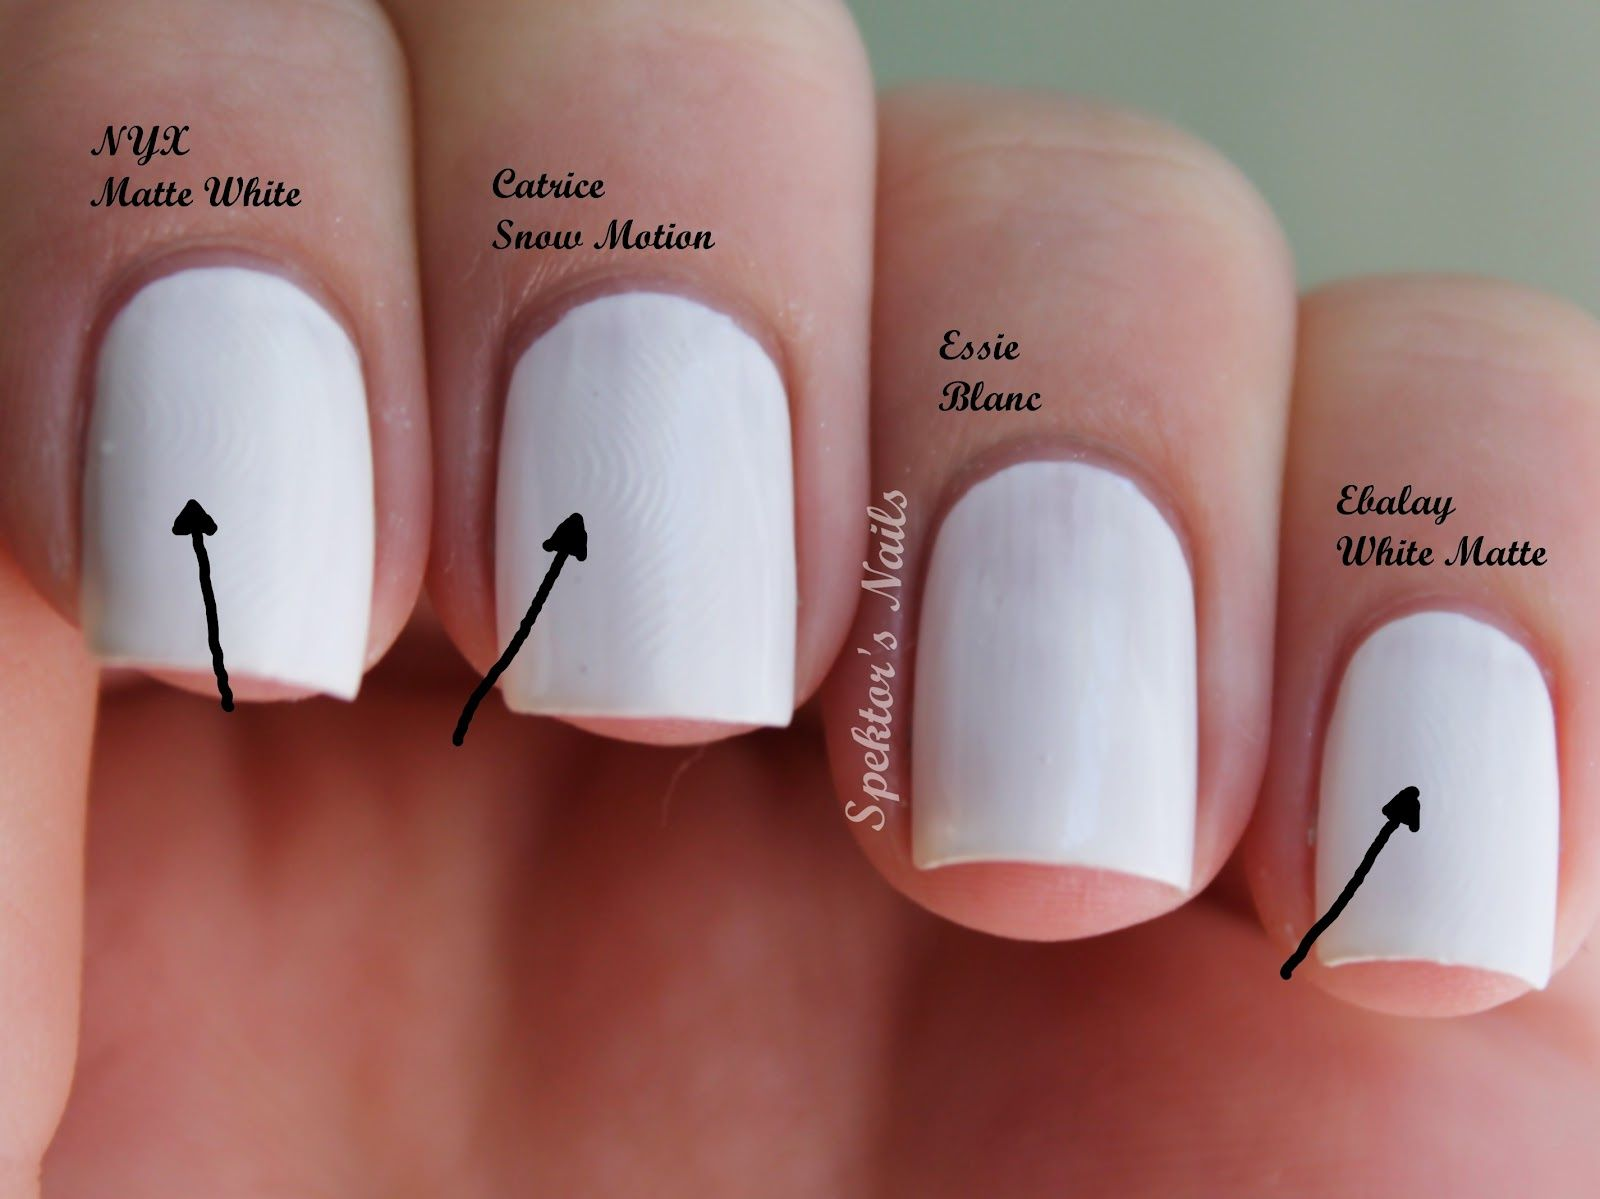 Best Essie White Nail Polish - Water Nail Polish Design | Nails ...